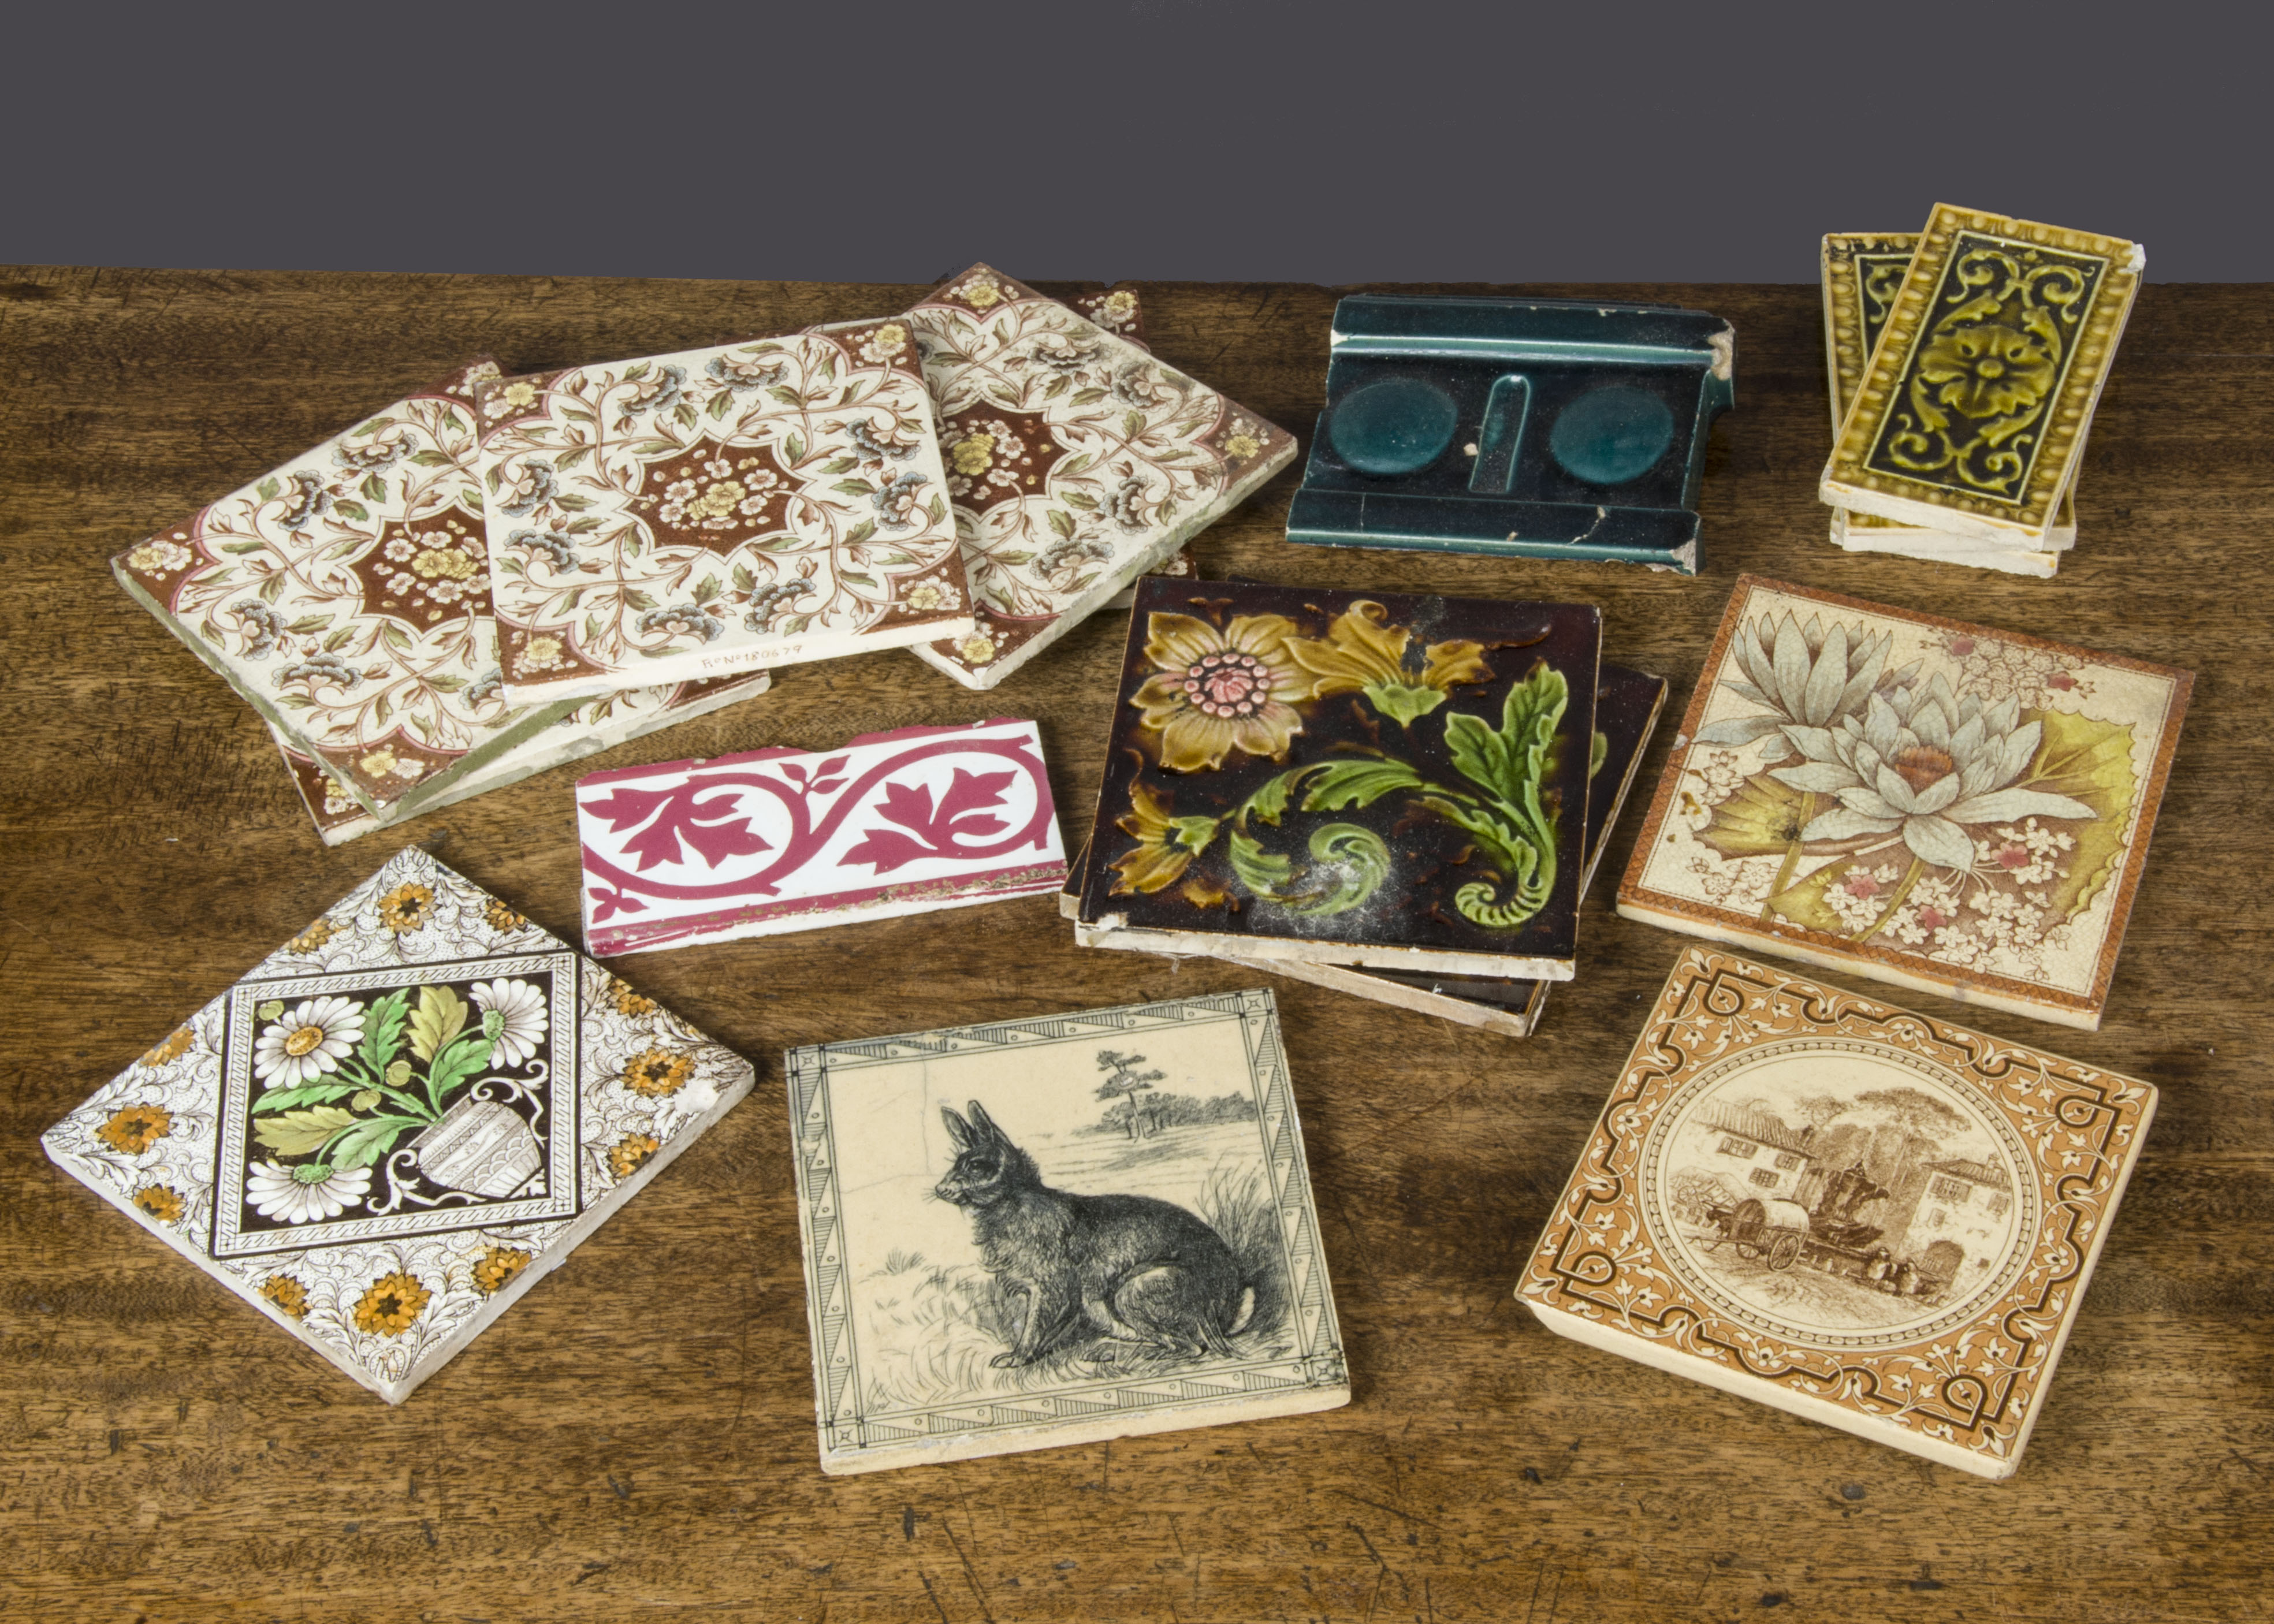 Lot 578 - English pottery tiles, a Minton black transfer printed with a hare (crack); a Minton tile trivet